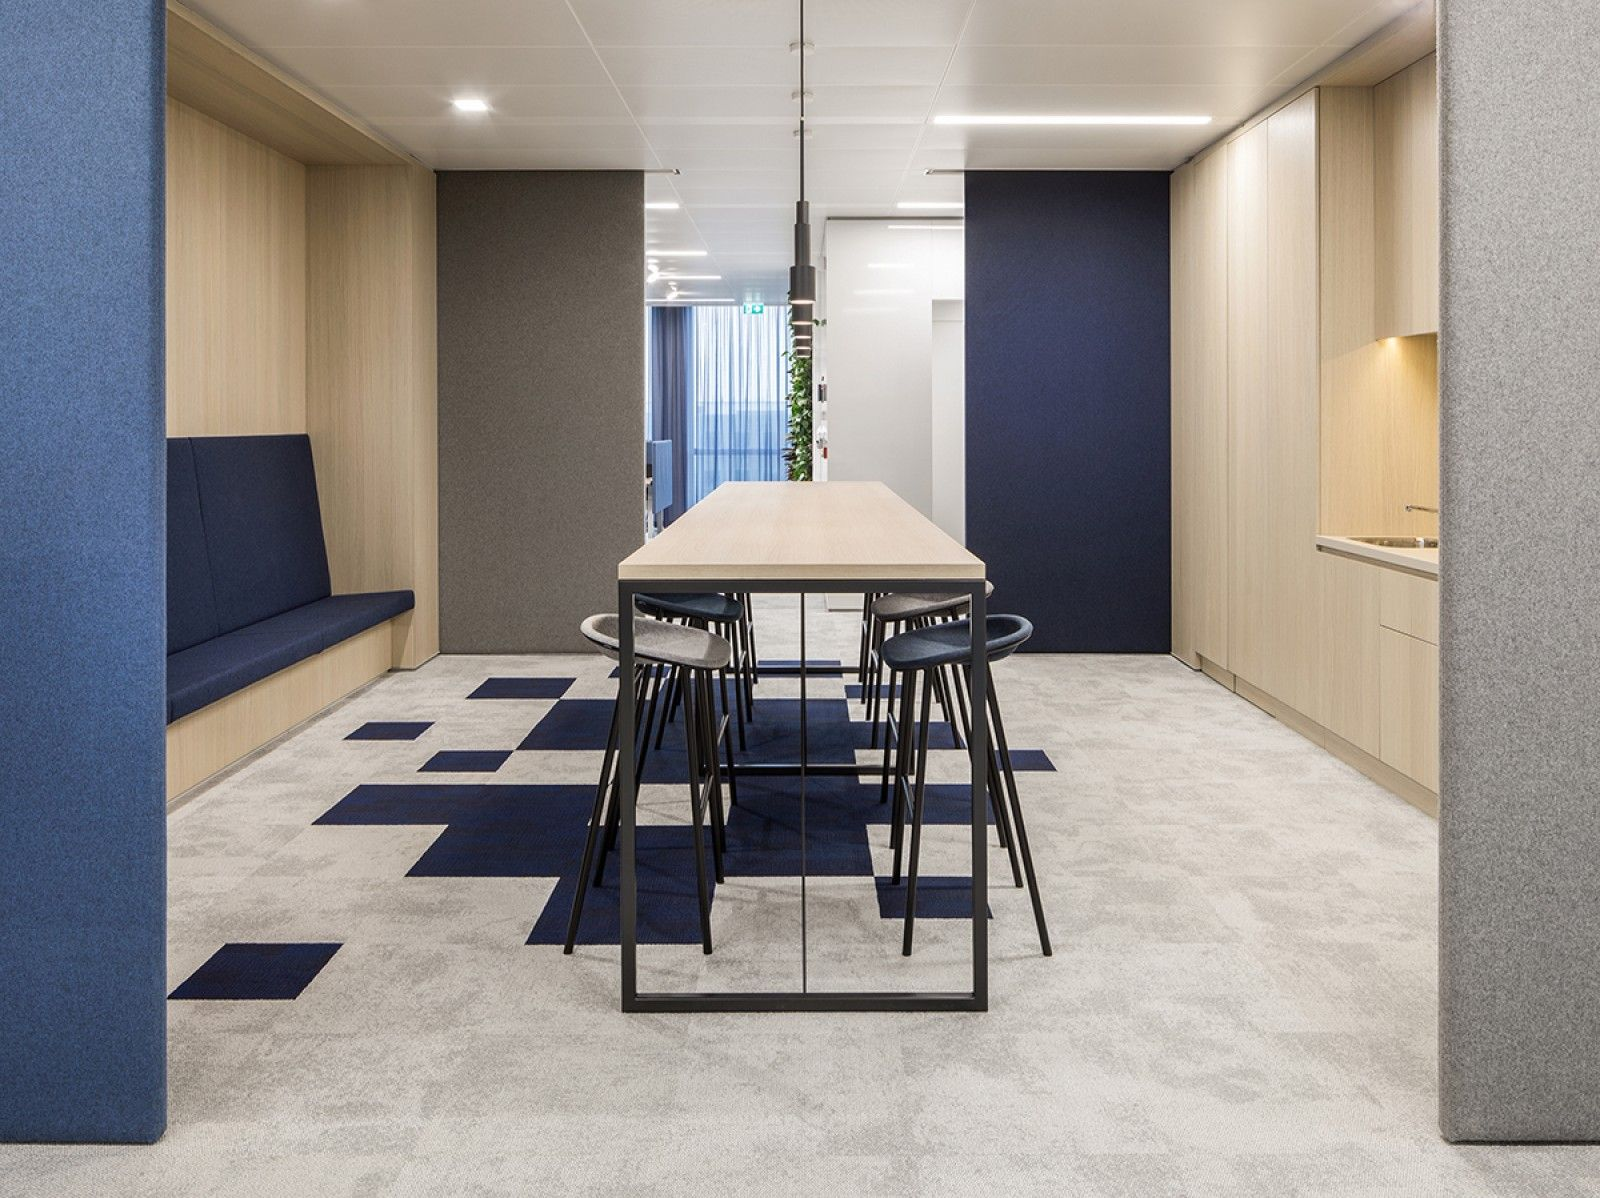 Home by i interior architects amsterdam sayitwithsilence